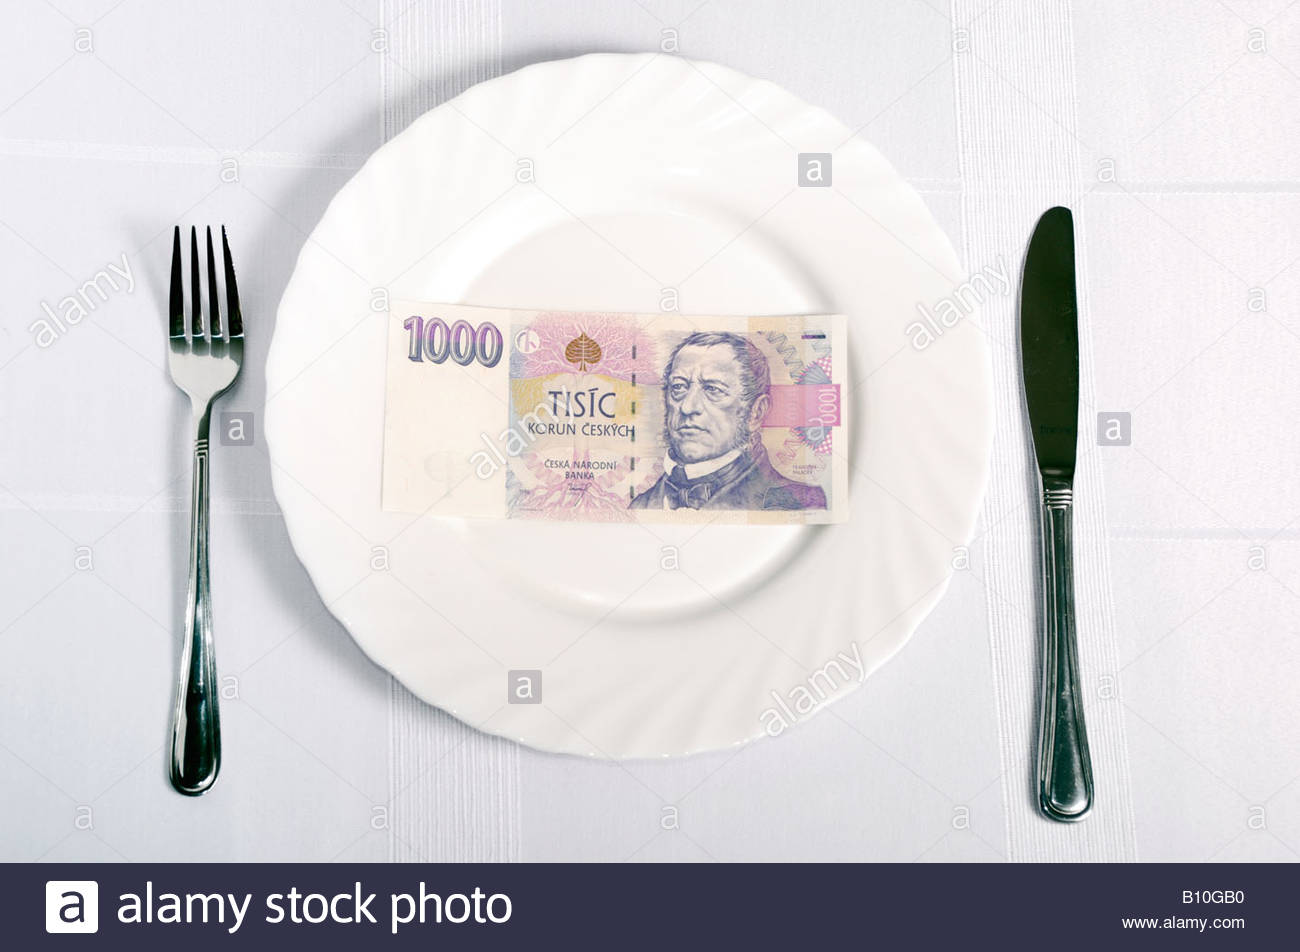 Expenditure of Food Stock Photo